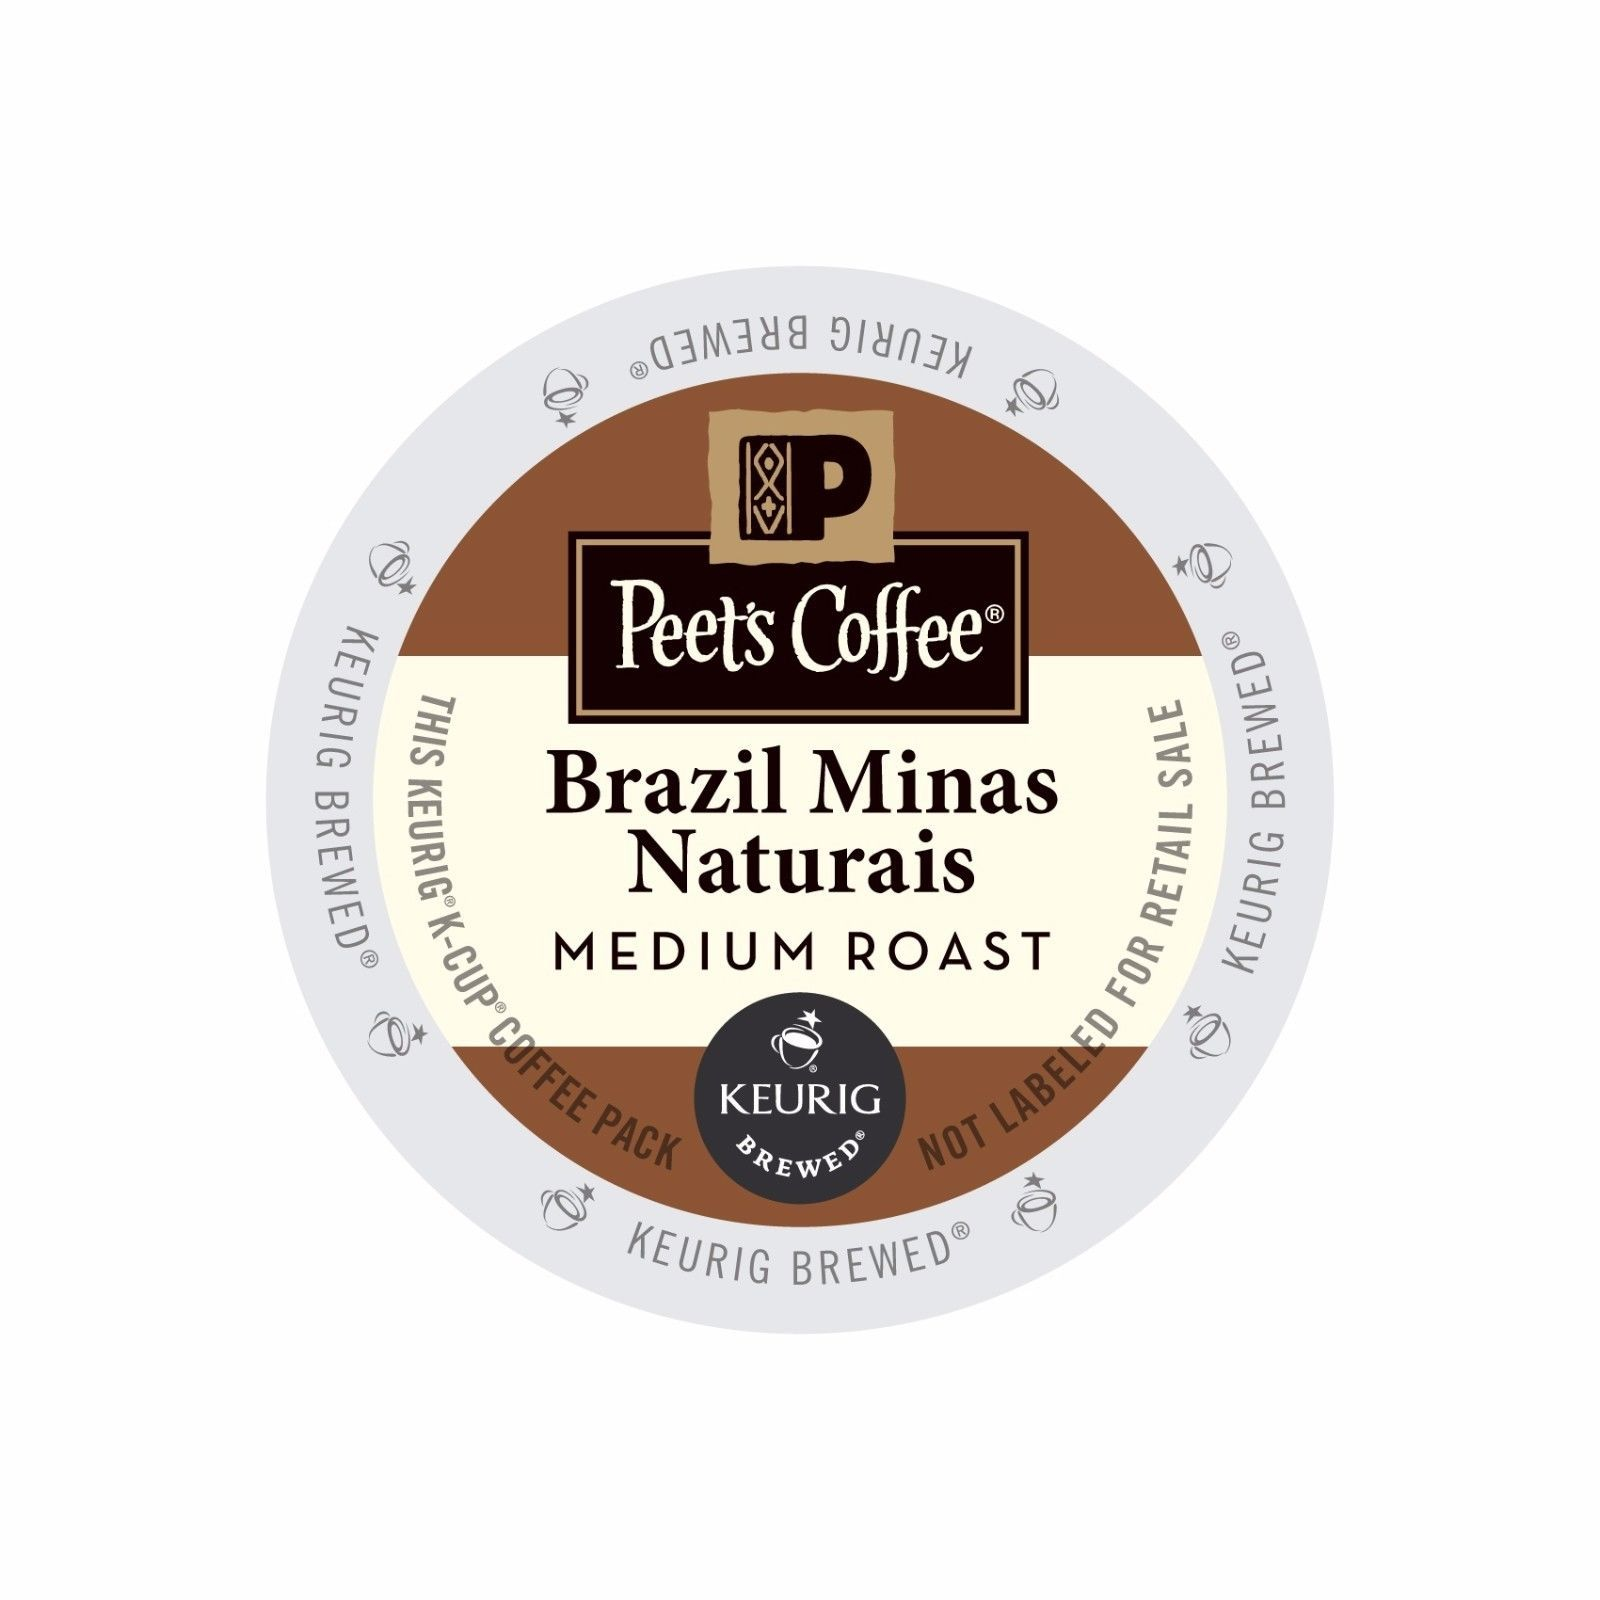 Peet's Coffee Brazil Minas Naturais Coffee, 88 count Kcups, FREE SHIPPING